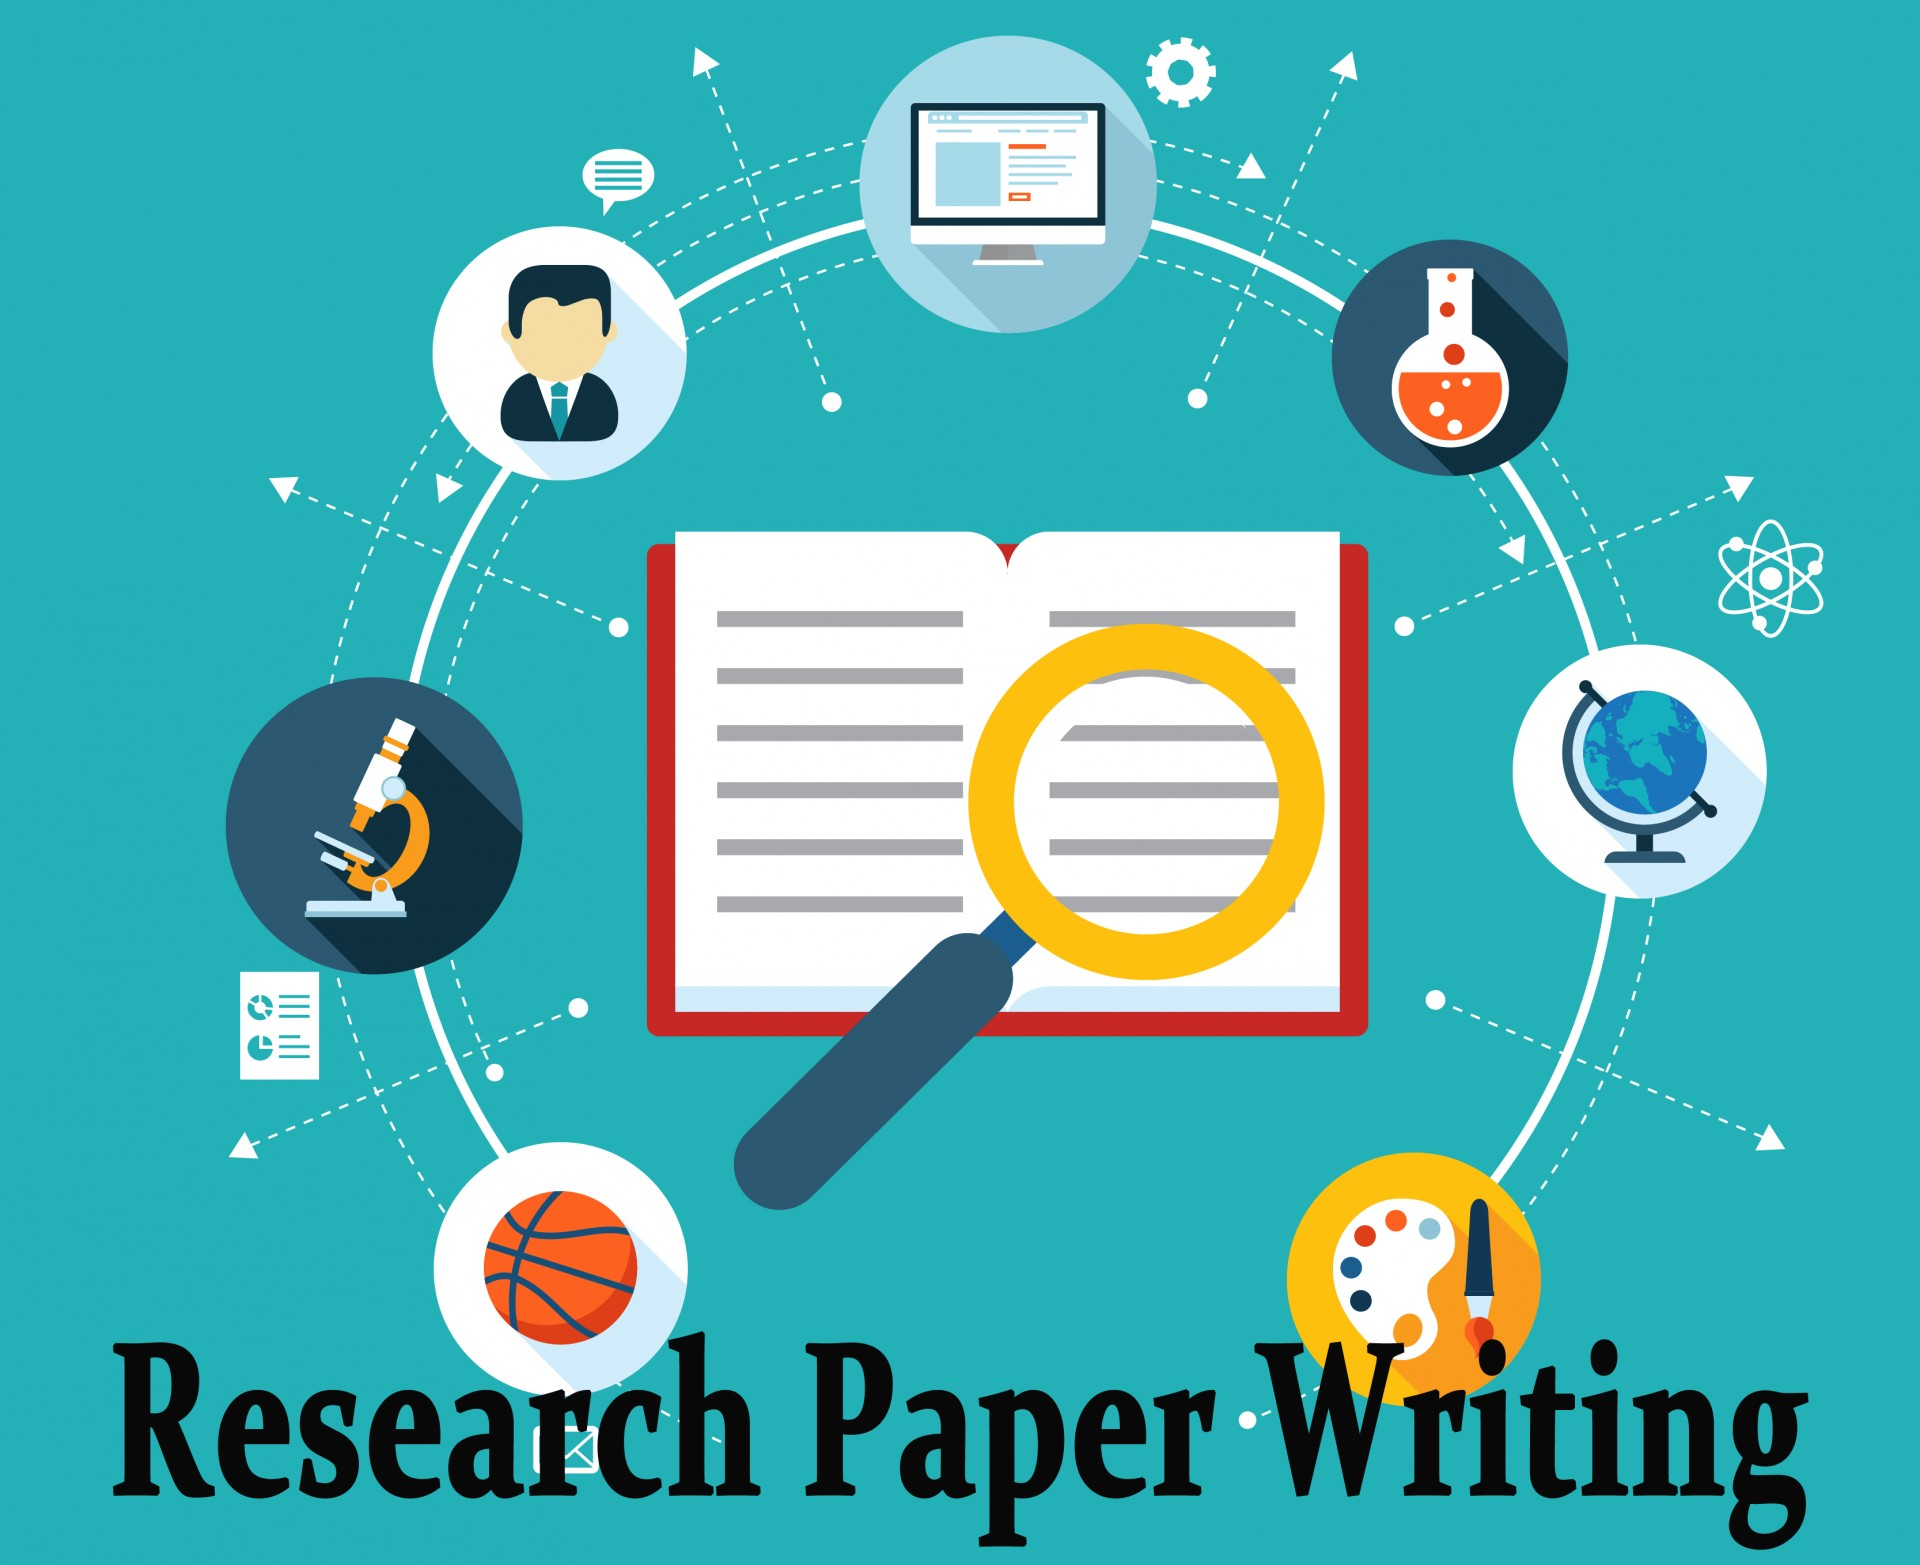 001 Help With Research Paper 503 Effective Writing Unique A Outline Me Write Free 1920